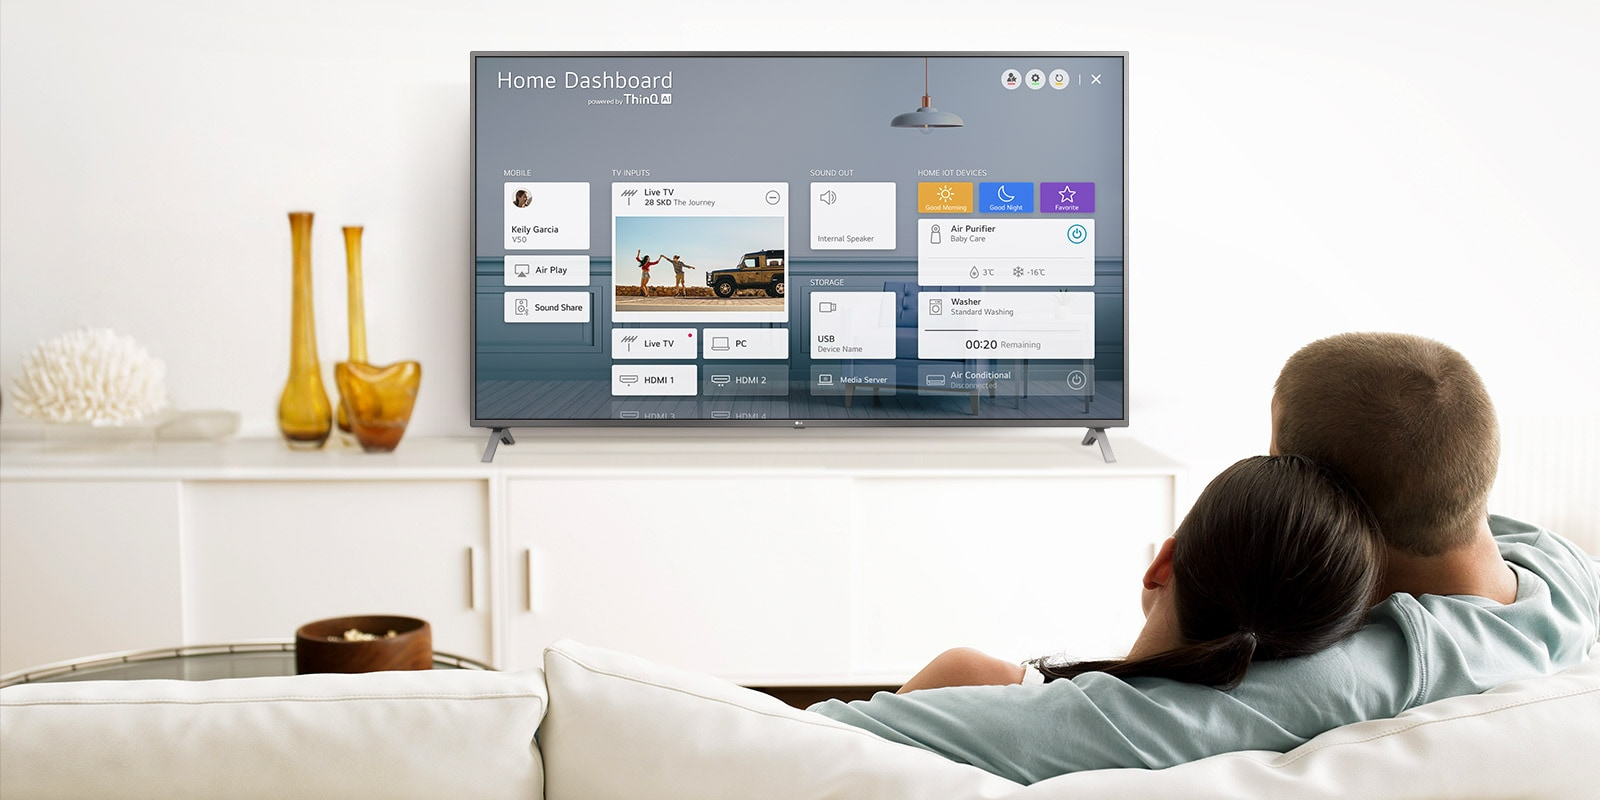 A men and women sitting on a sofa in the living room with the Home Dashboard on the TV screen